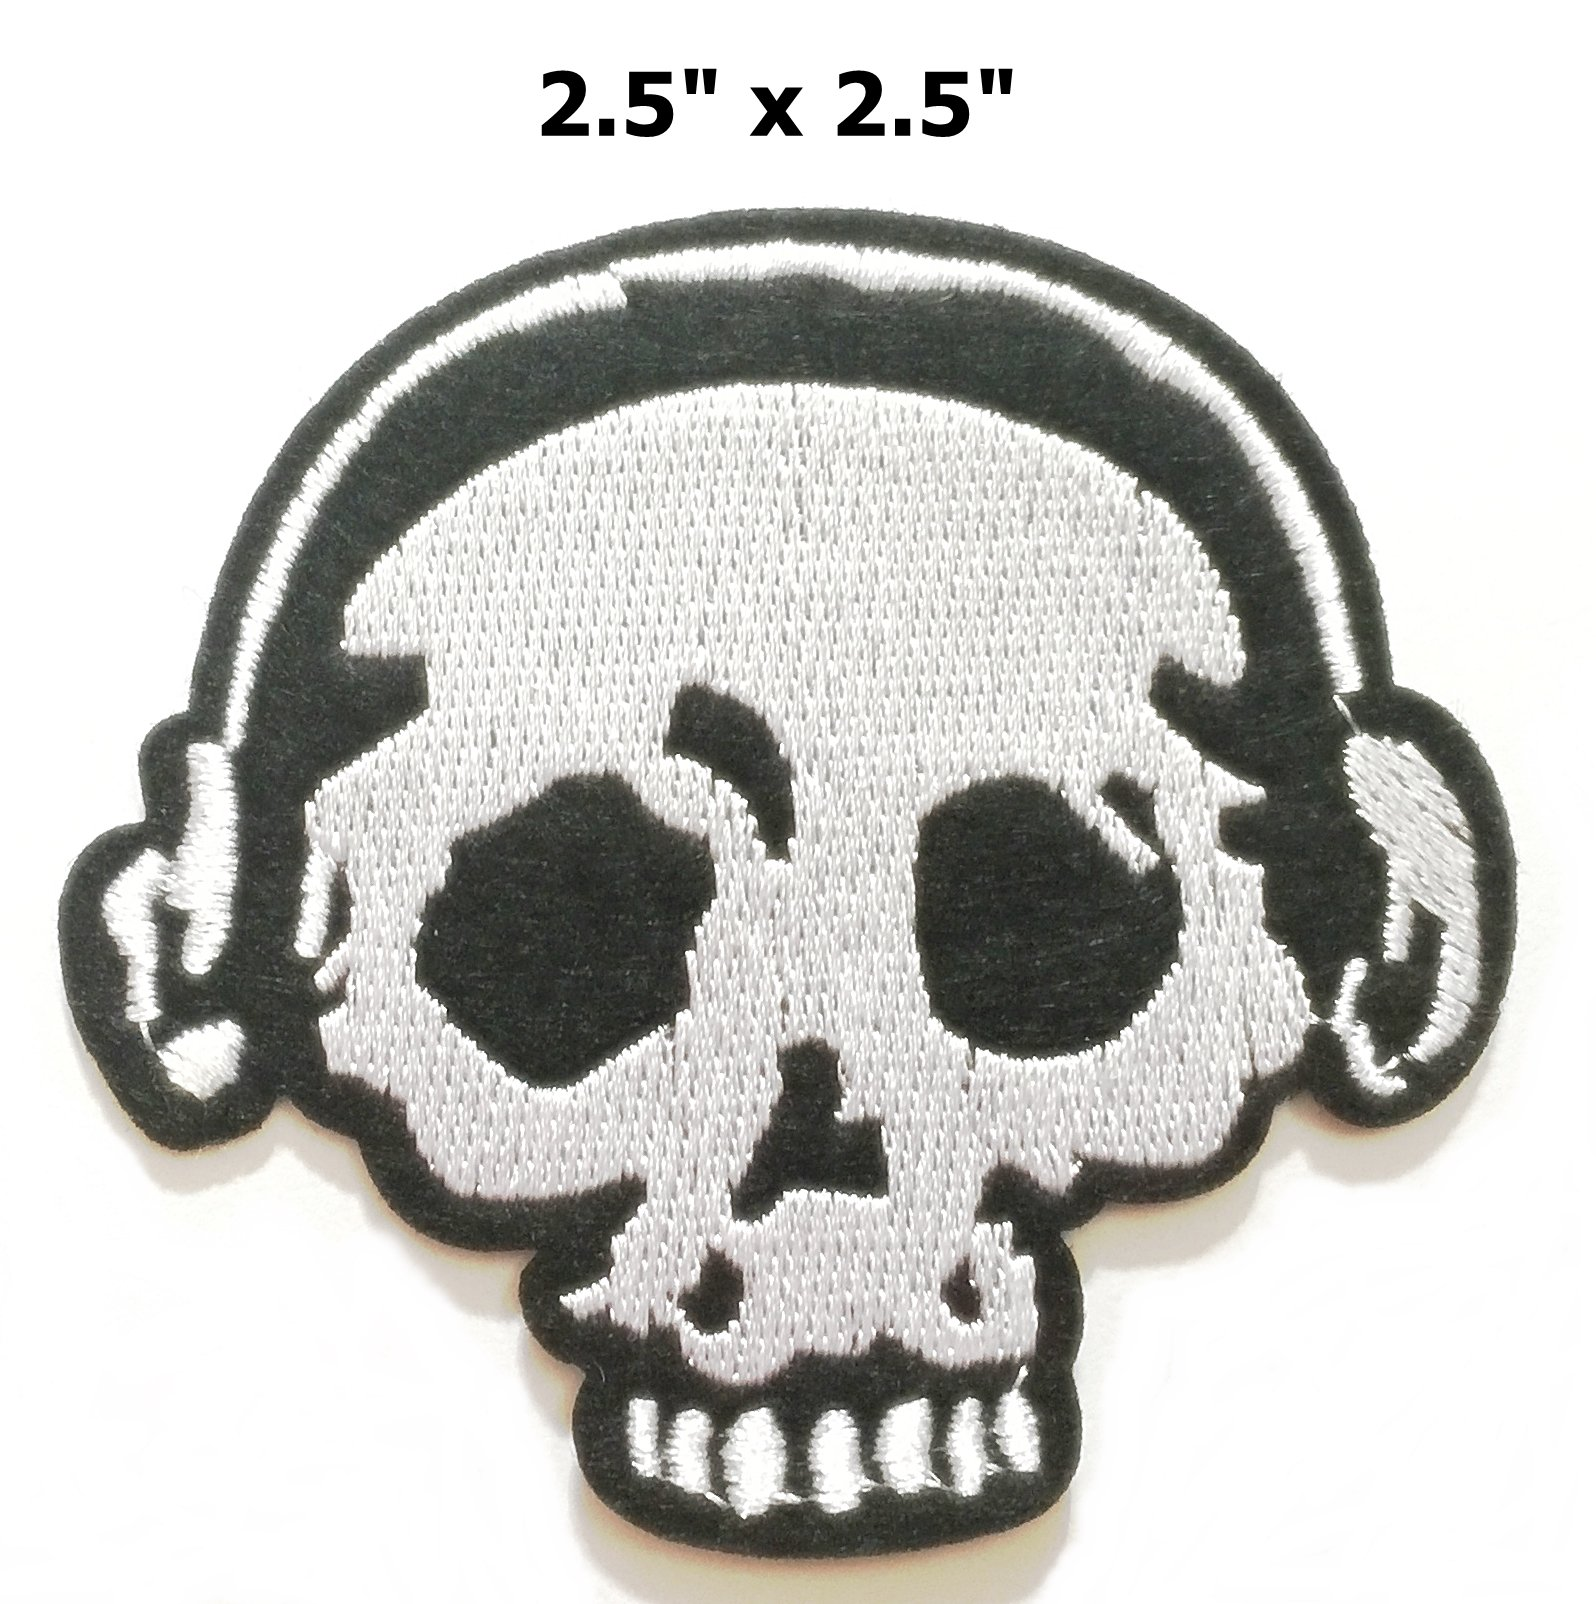 Set Patch of Iron on Band Patches#22,Rock Patch,AC DC ACDC Patch,Misfits Patch,Skull Patch,Sublime Patch,Slayer,Sex Pistols Patch, Red Hot Chili Peppers Patch Embroidered Iron by BossBee